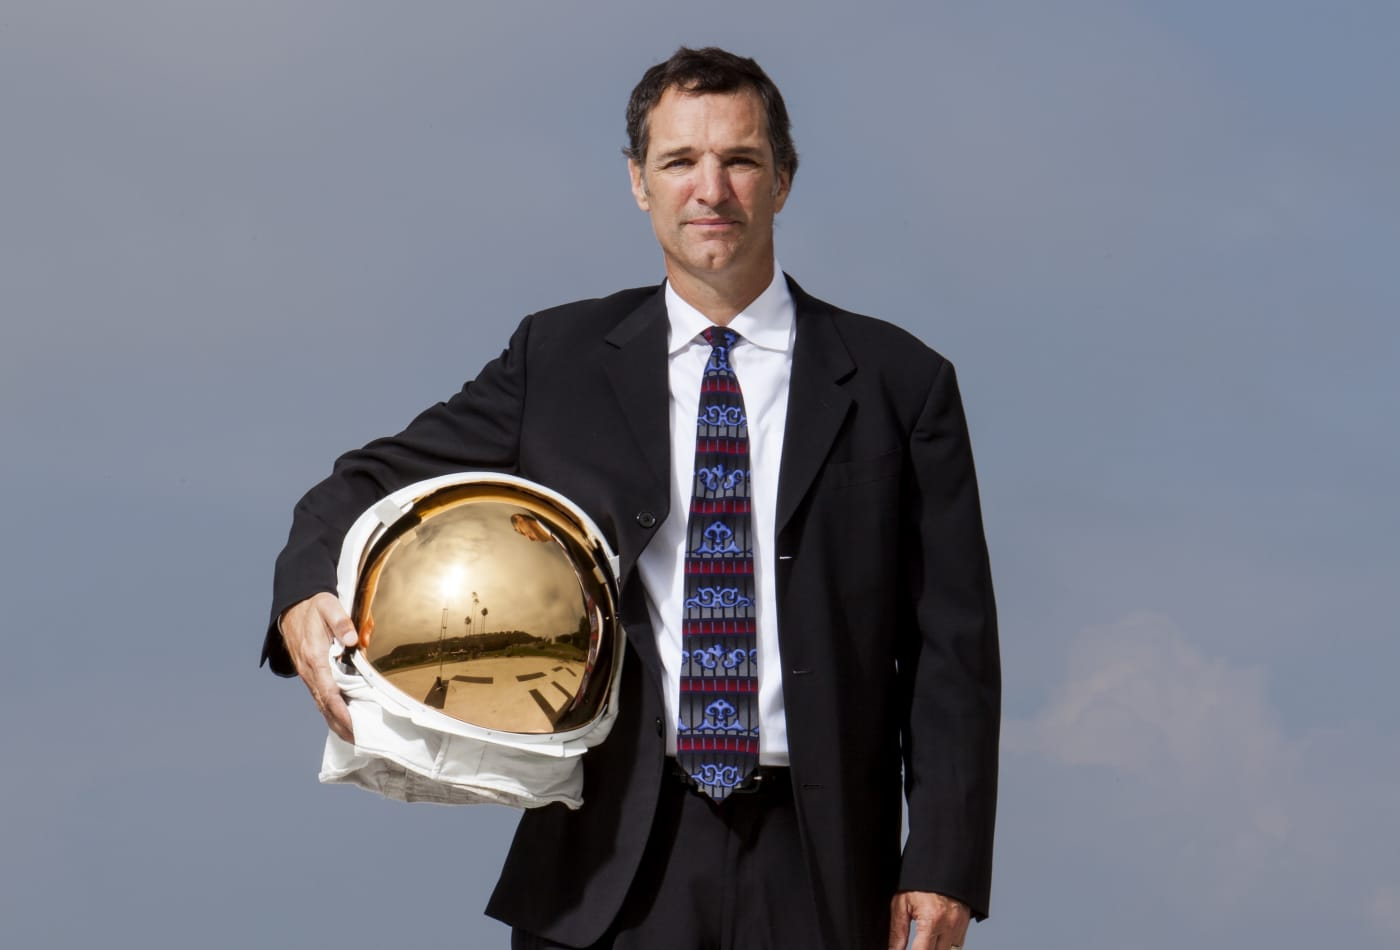 Tom Mueller: SpaceX CTO who makes Elon Musk's rockets lift off